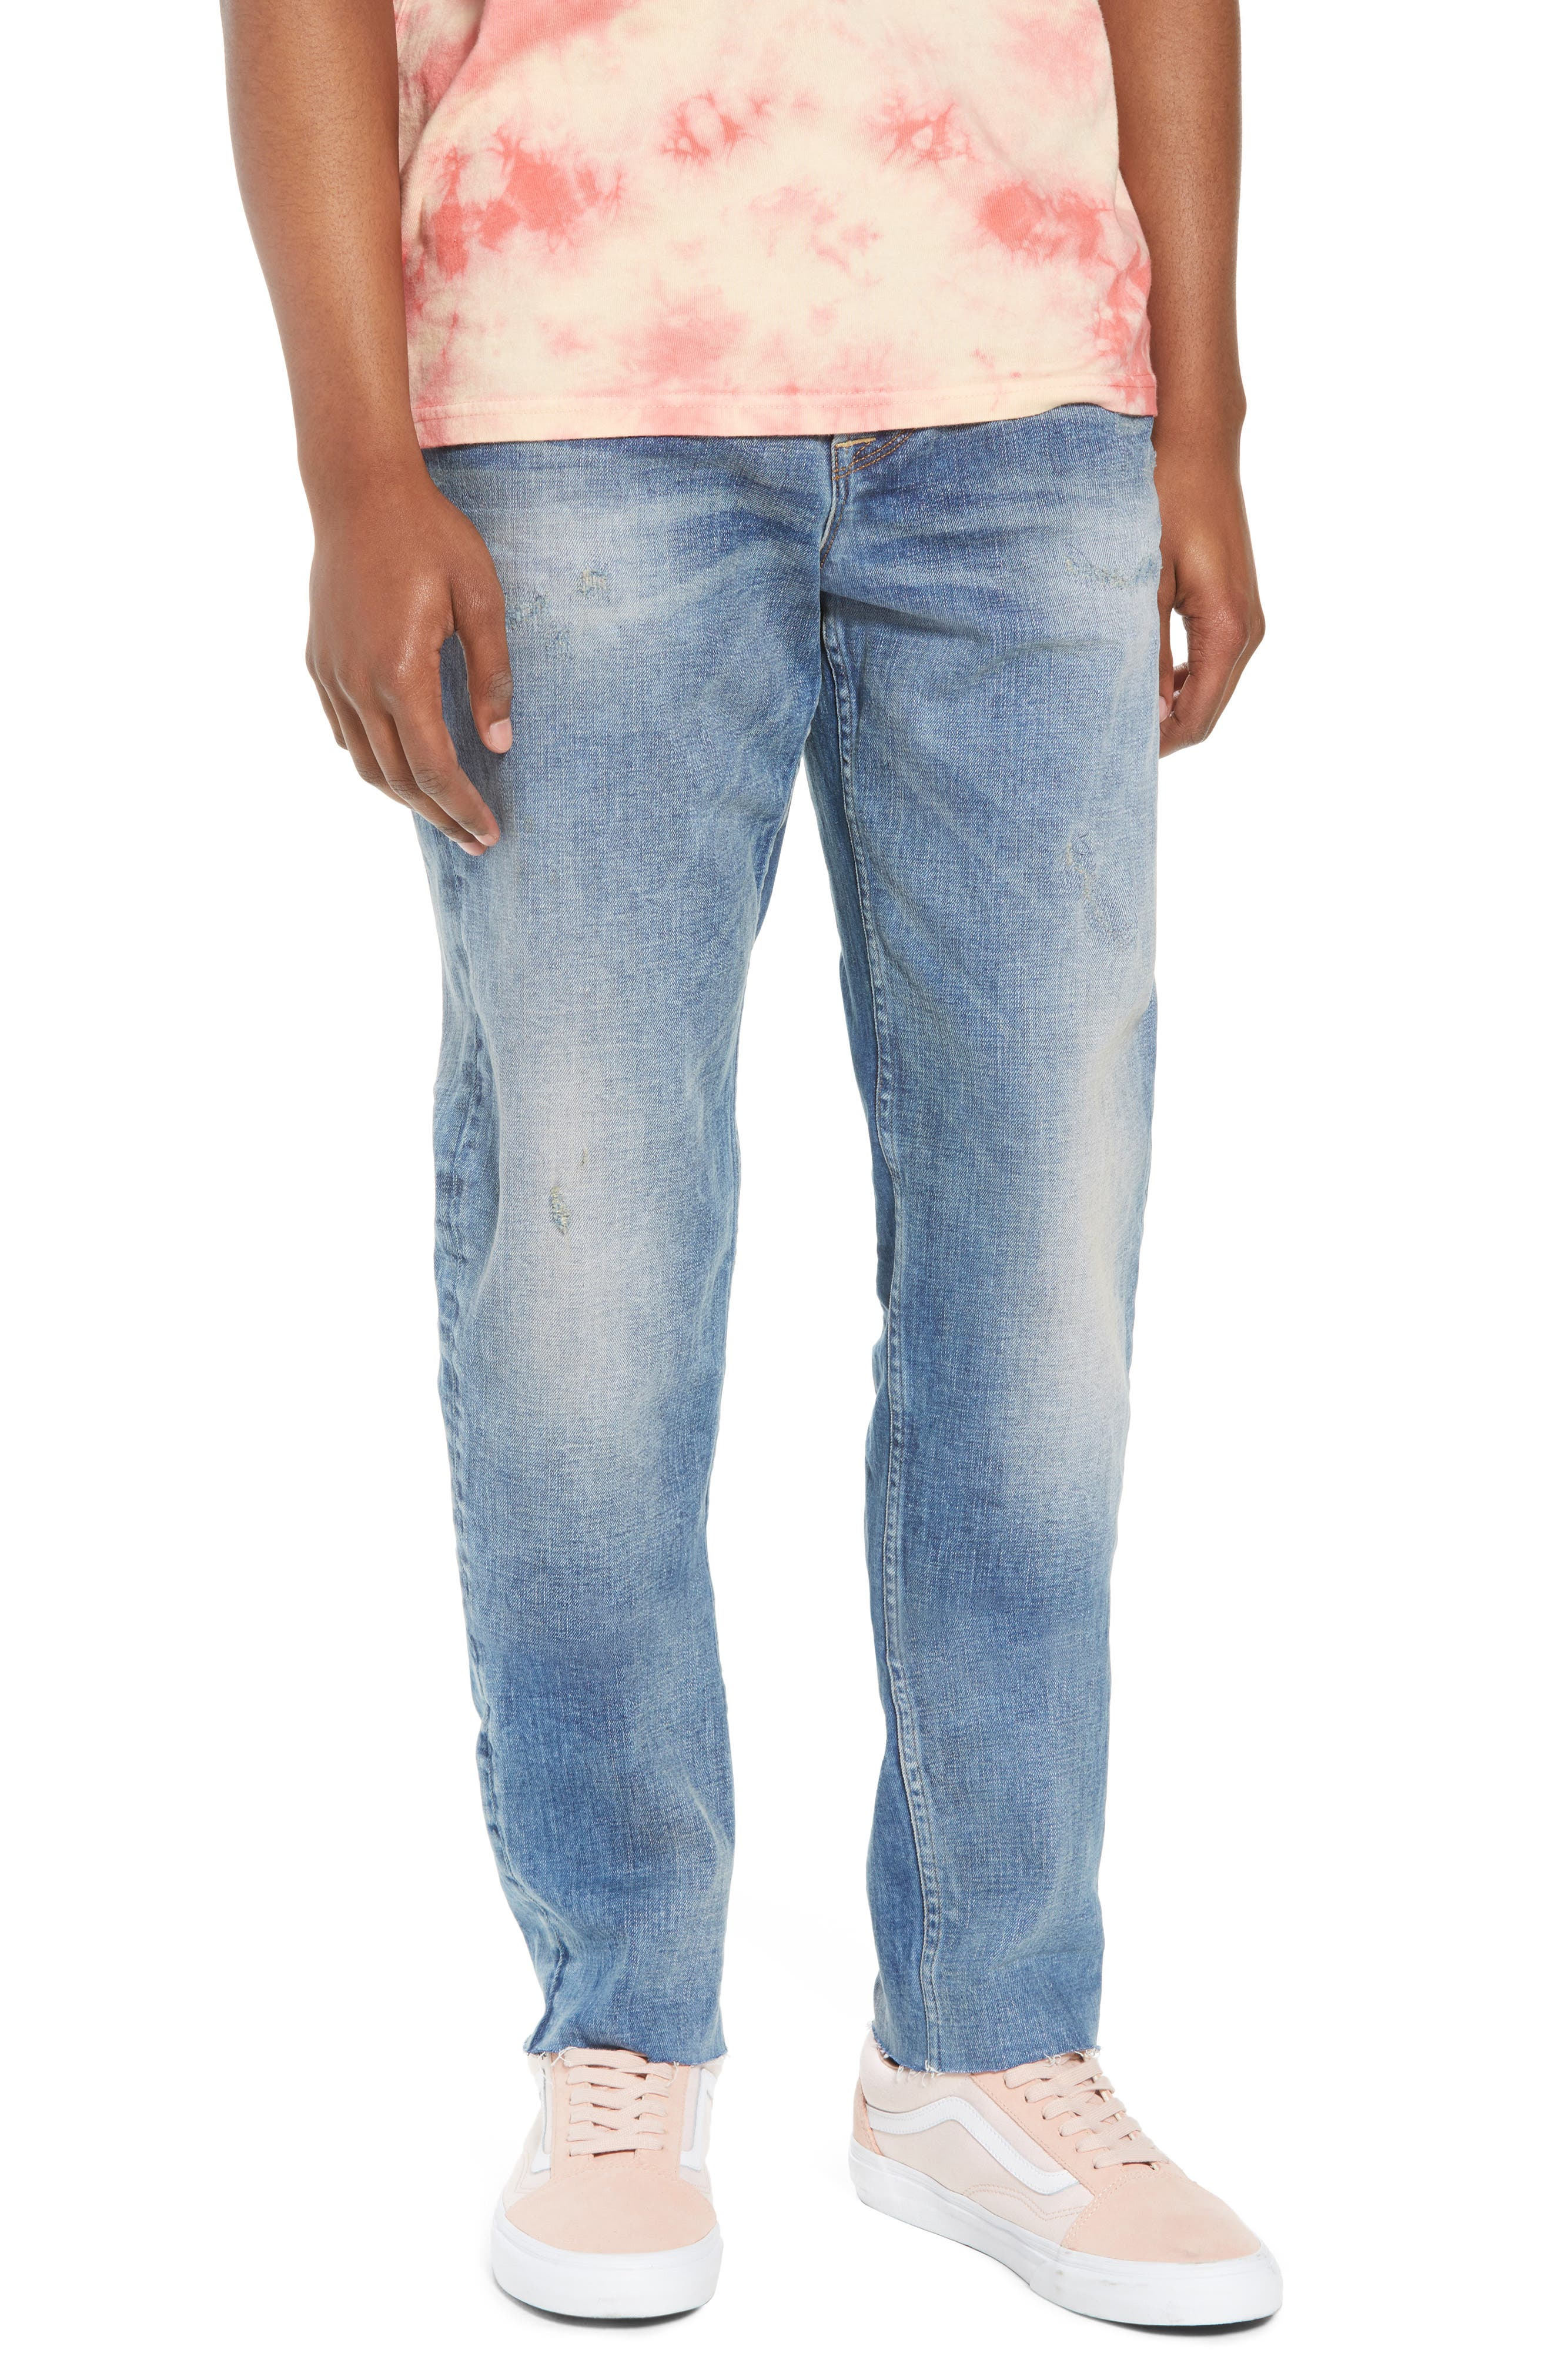 Sartor Slouchy Skinny Fit Jeans,                             Main thumbnail 1, color,                             429